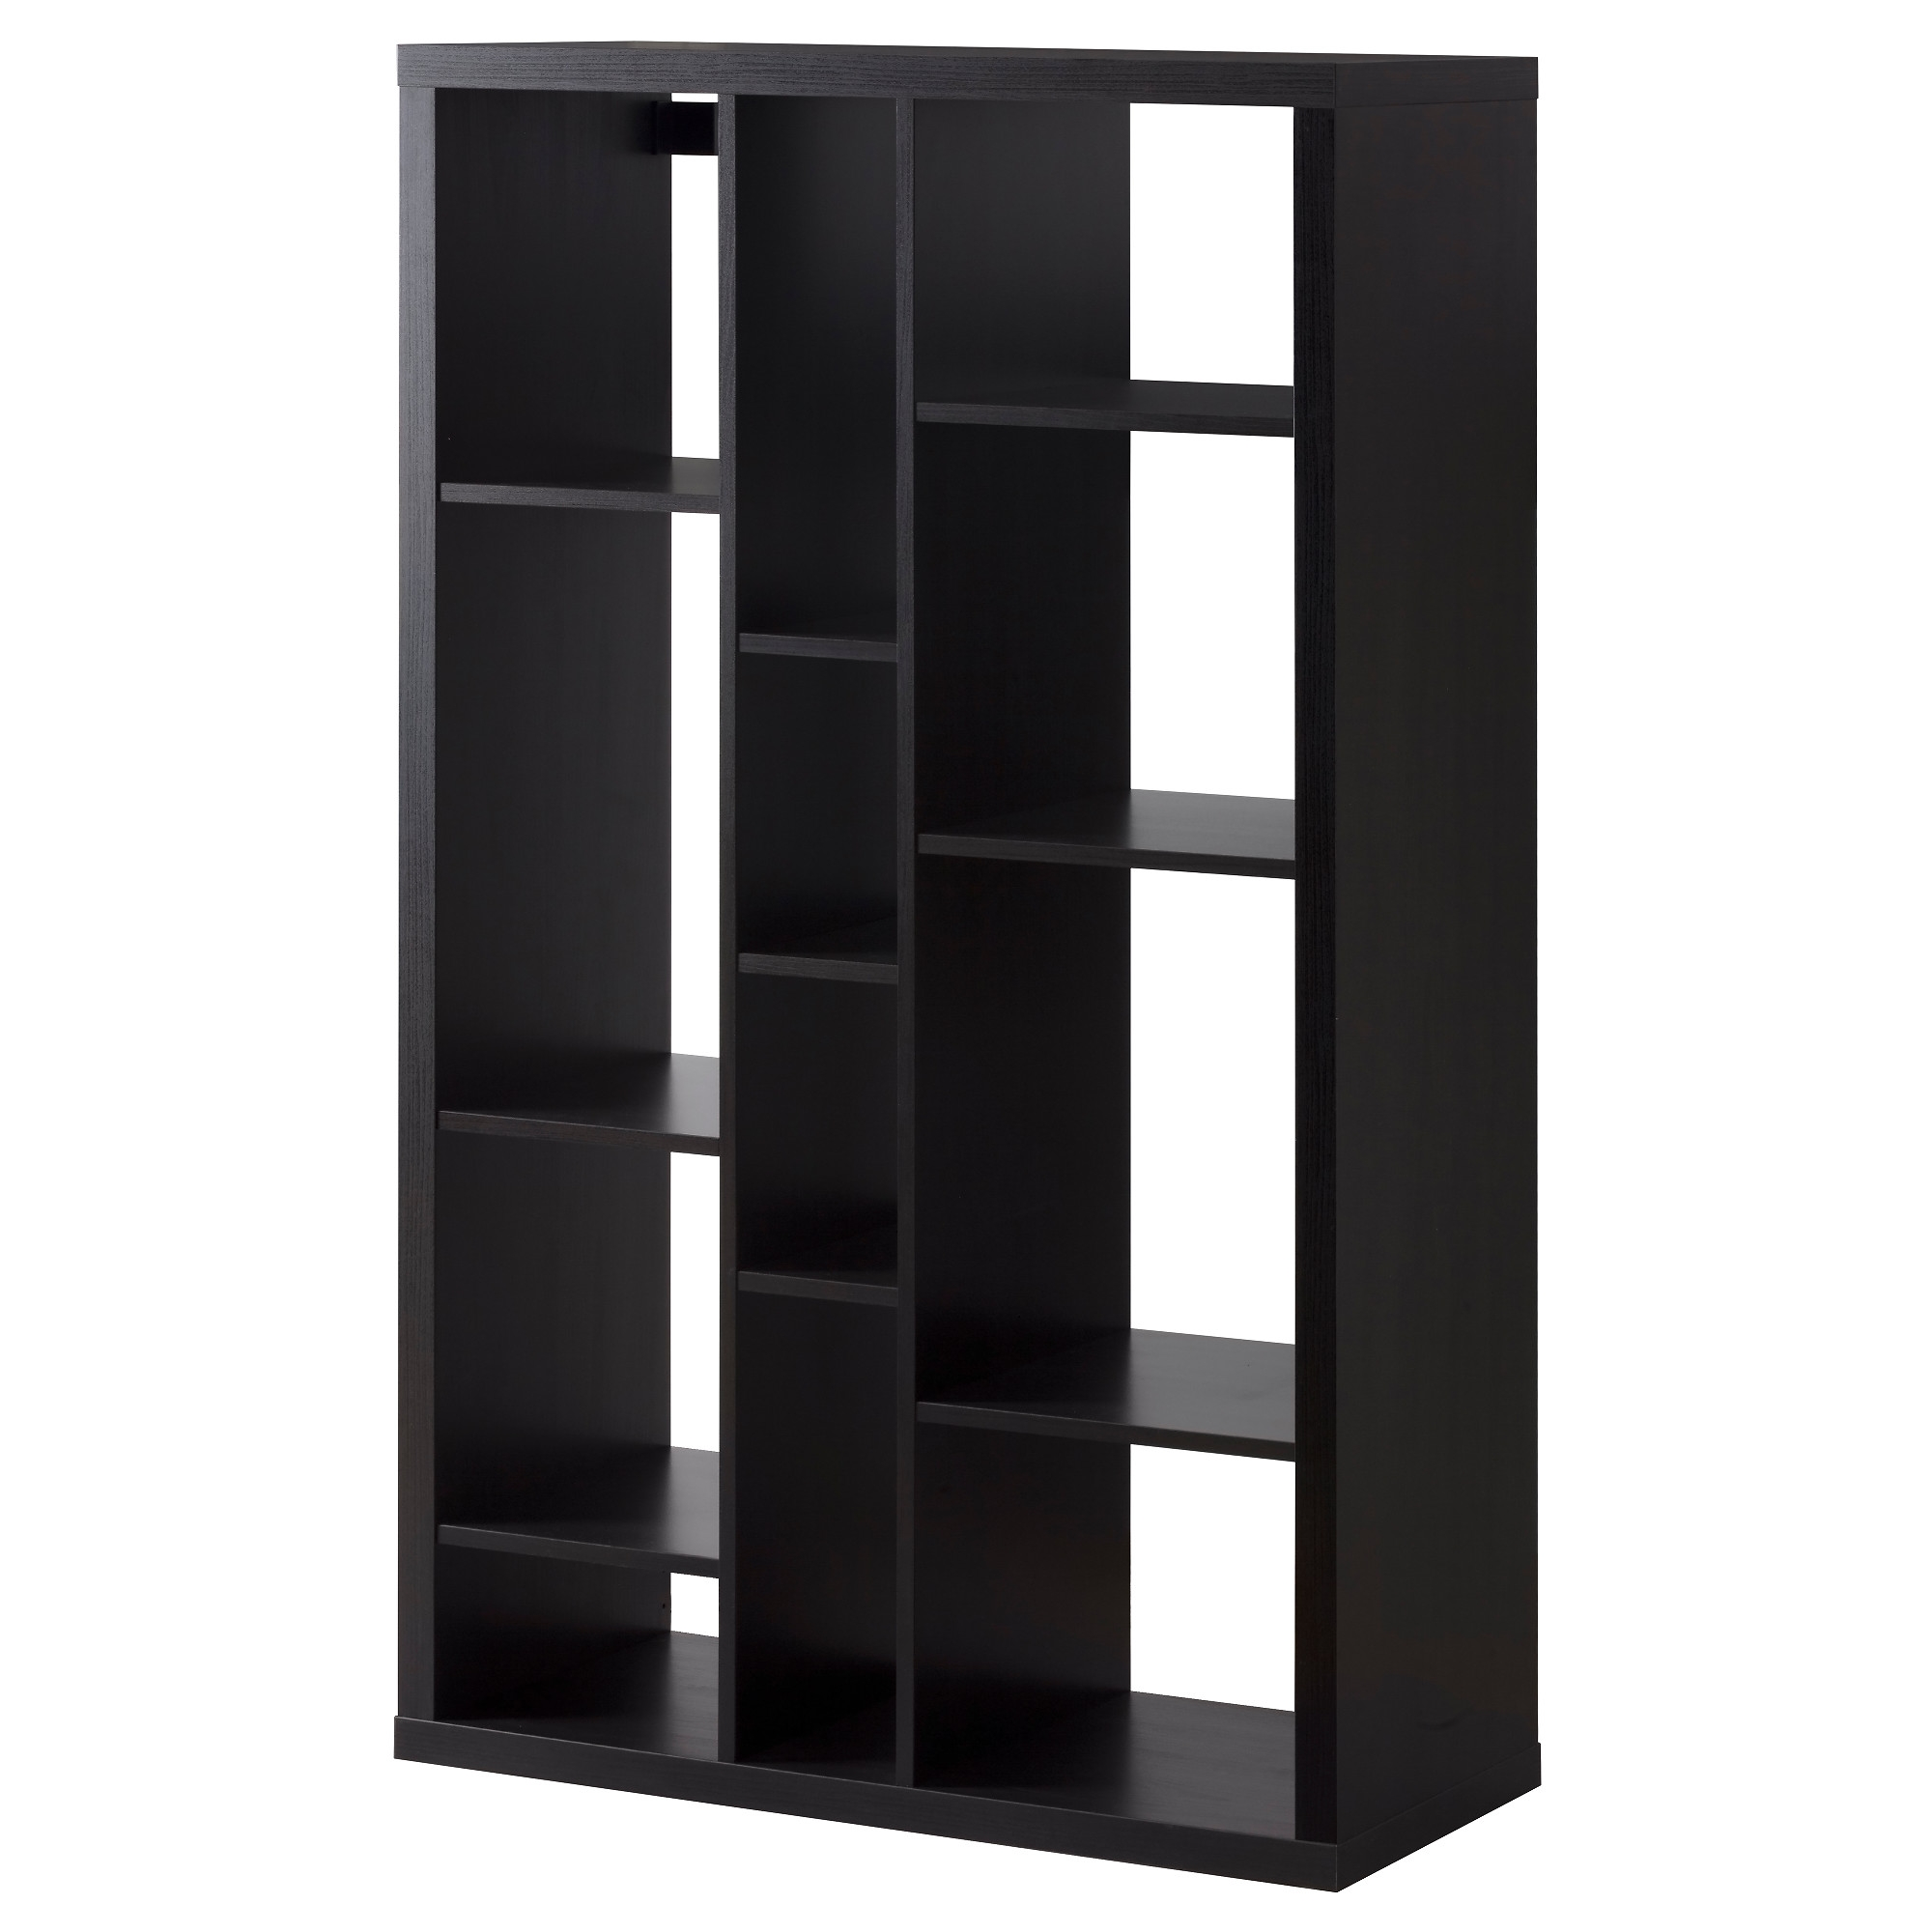 Shelves Shelving Units Ikea Inside Freestanding Bookshelves (#15 of 15)